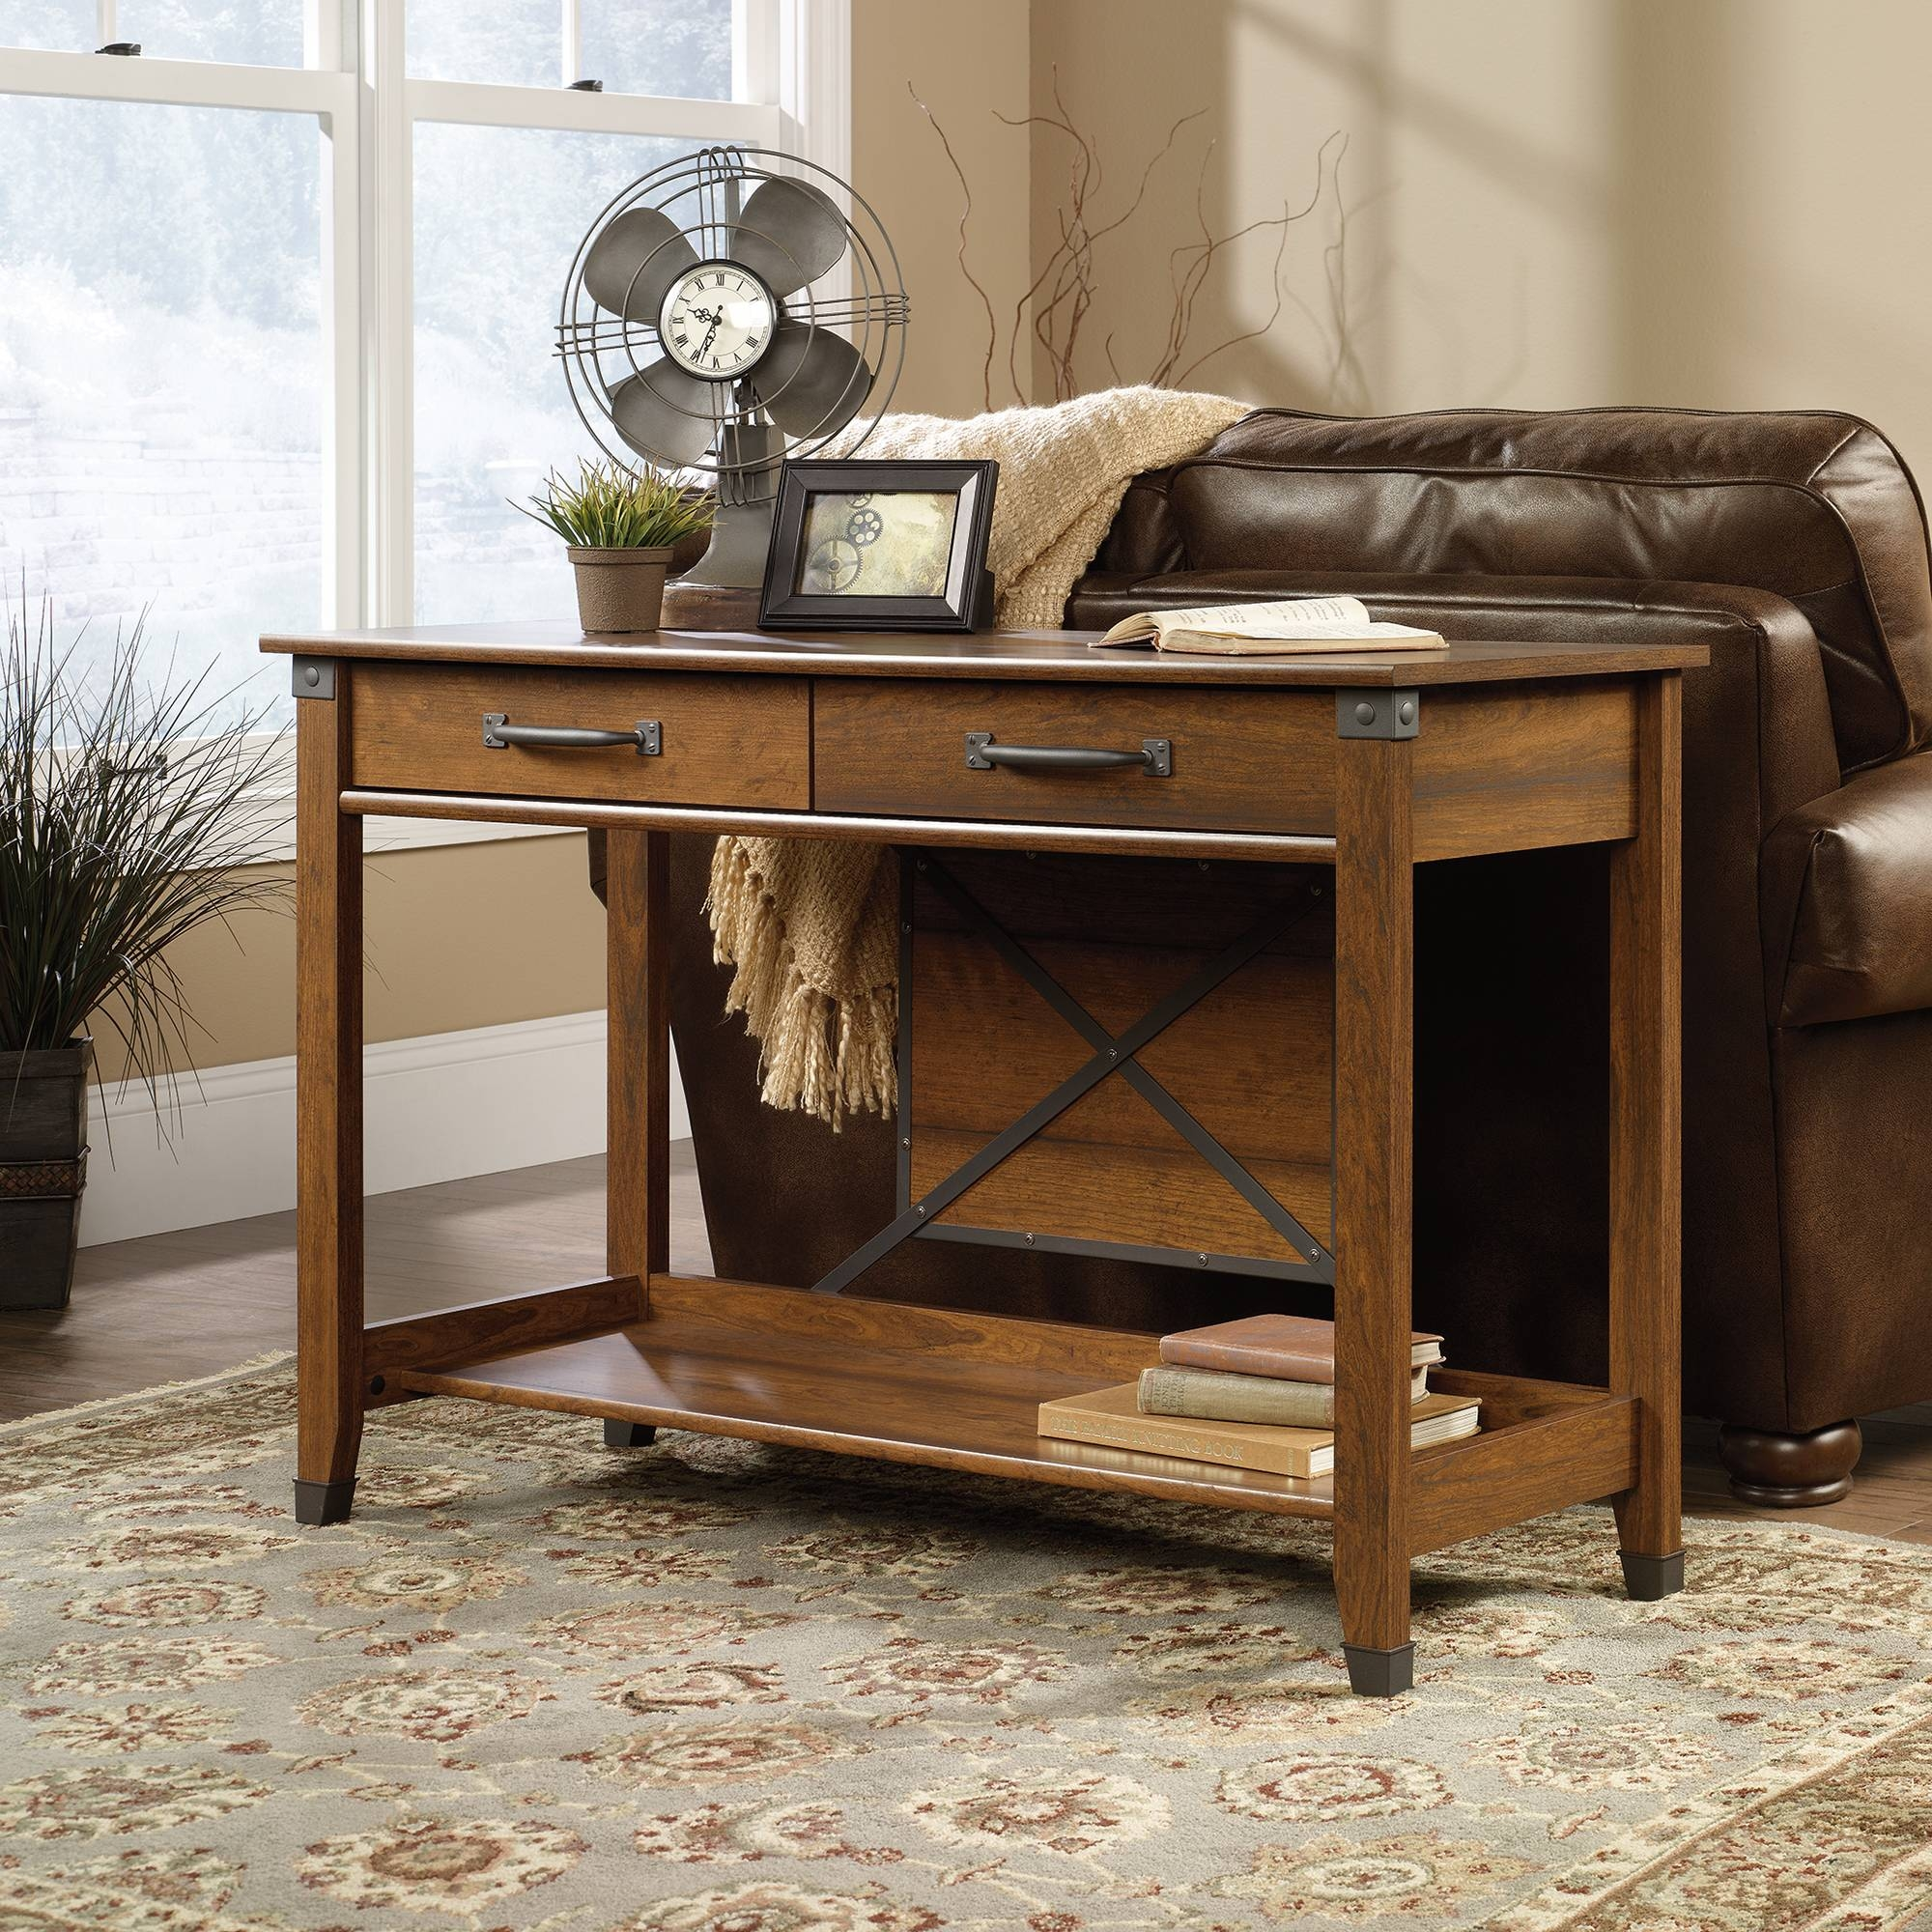 Carson Forge | Sofa Table | 414443 | Sauder with Sofa Table Drawers (Image 5 of 30)